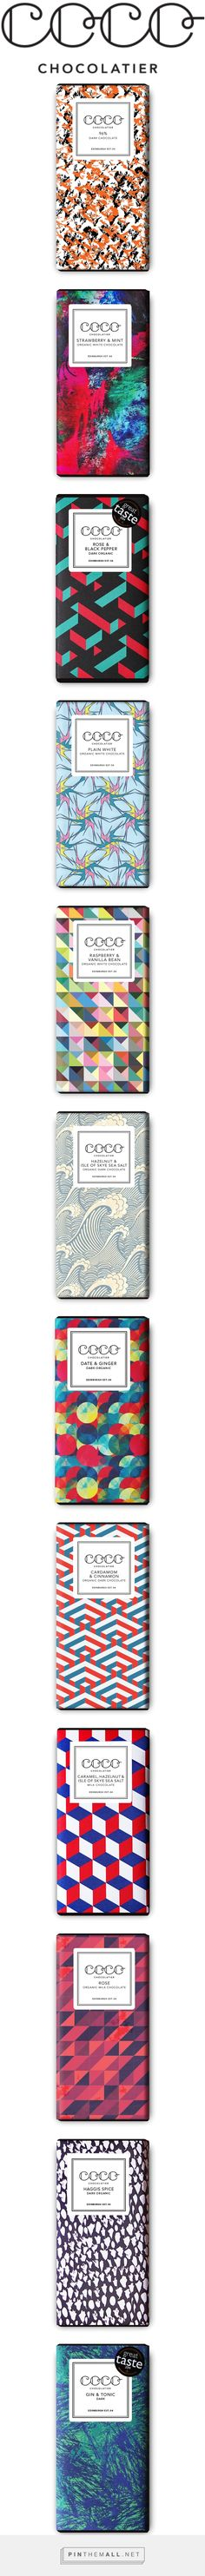 COCO CHOCOLATIER curated by Packaging Diva PD. Yummy chocolate packaging for UK Chocolate Week.